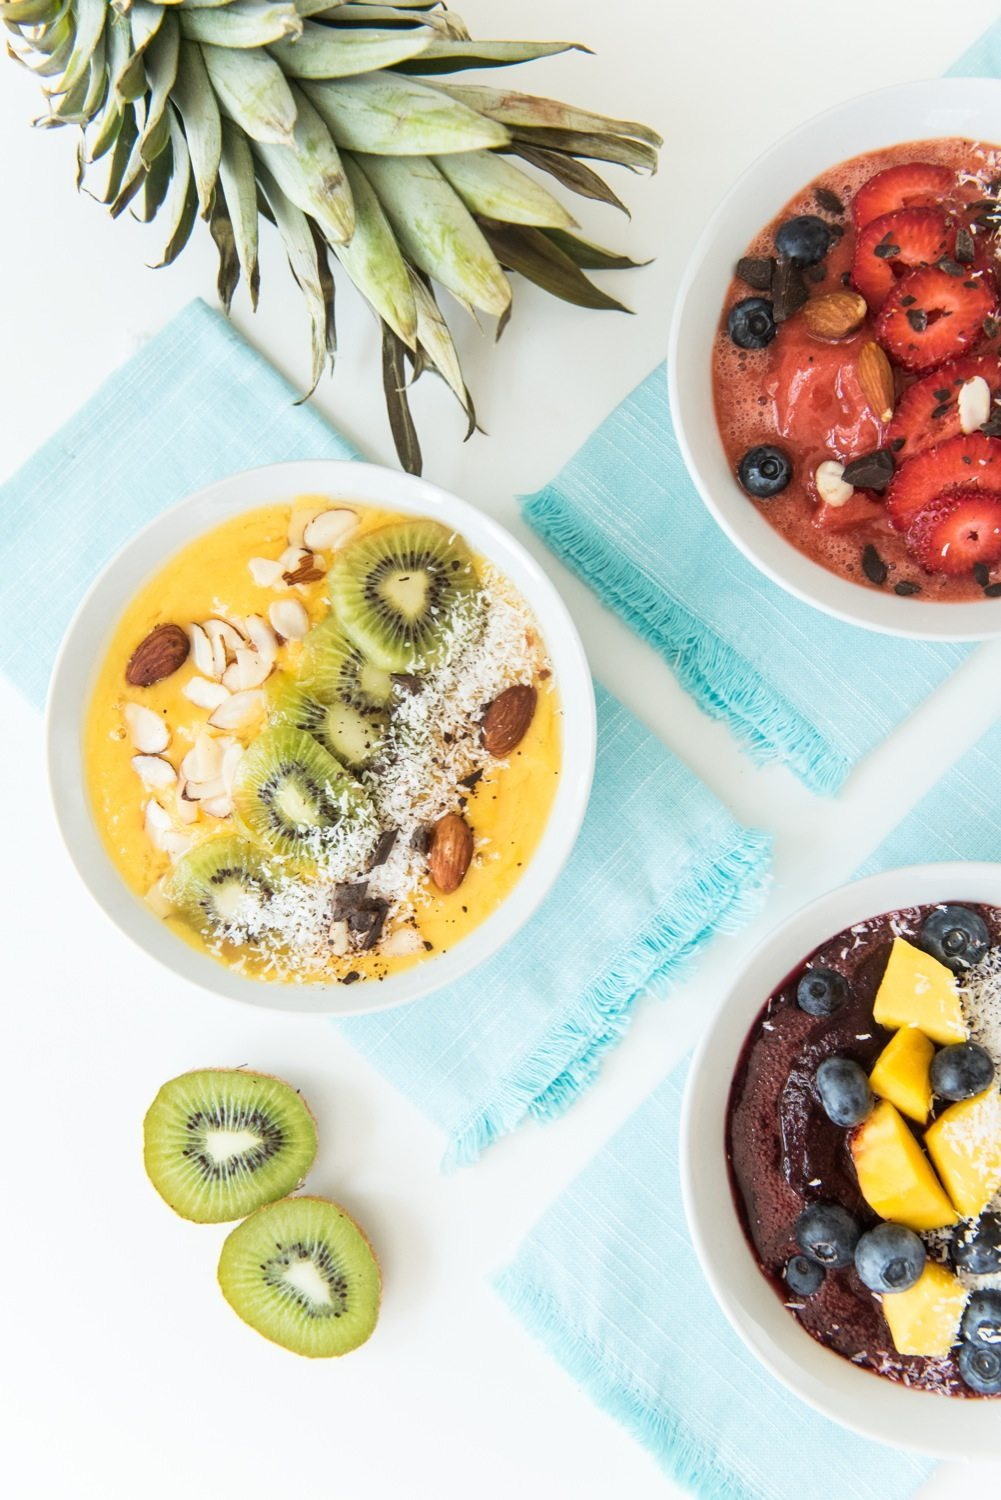 Summer Smoothie Bowl Recipe | 12 Summer Smoothies plus loads of party recipes, entertaining tips, cocktail recipes and more from @cydconverse